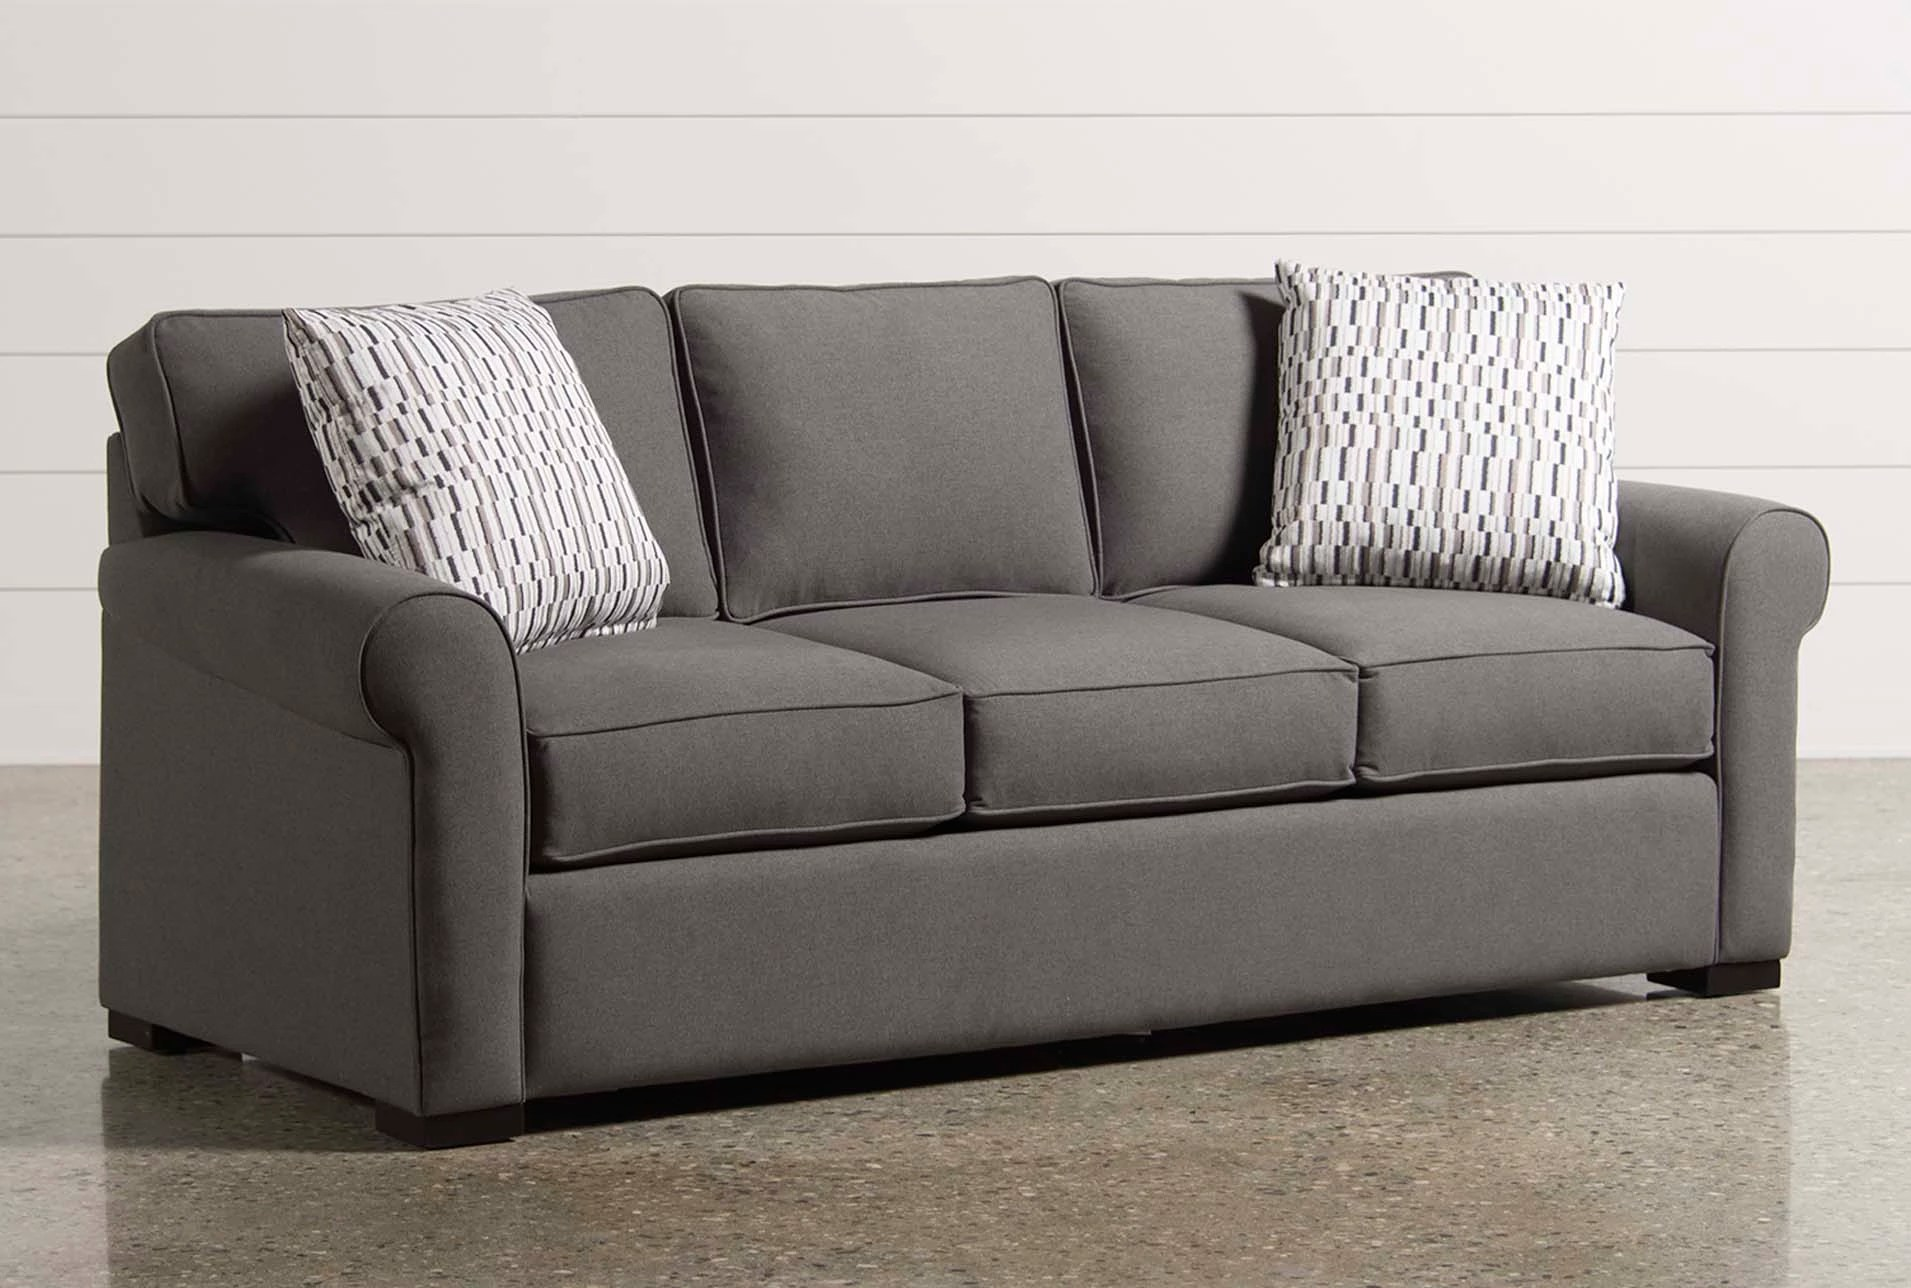 crate and barrel karnes sleeper sofa review bed cad block free with memory foam